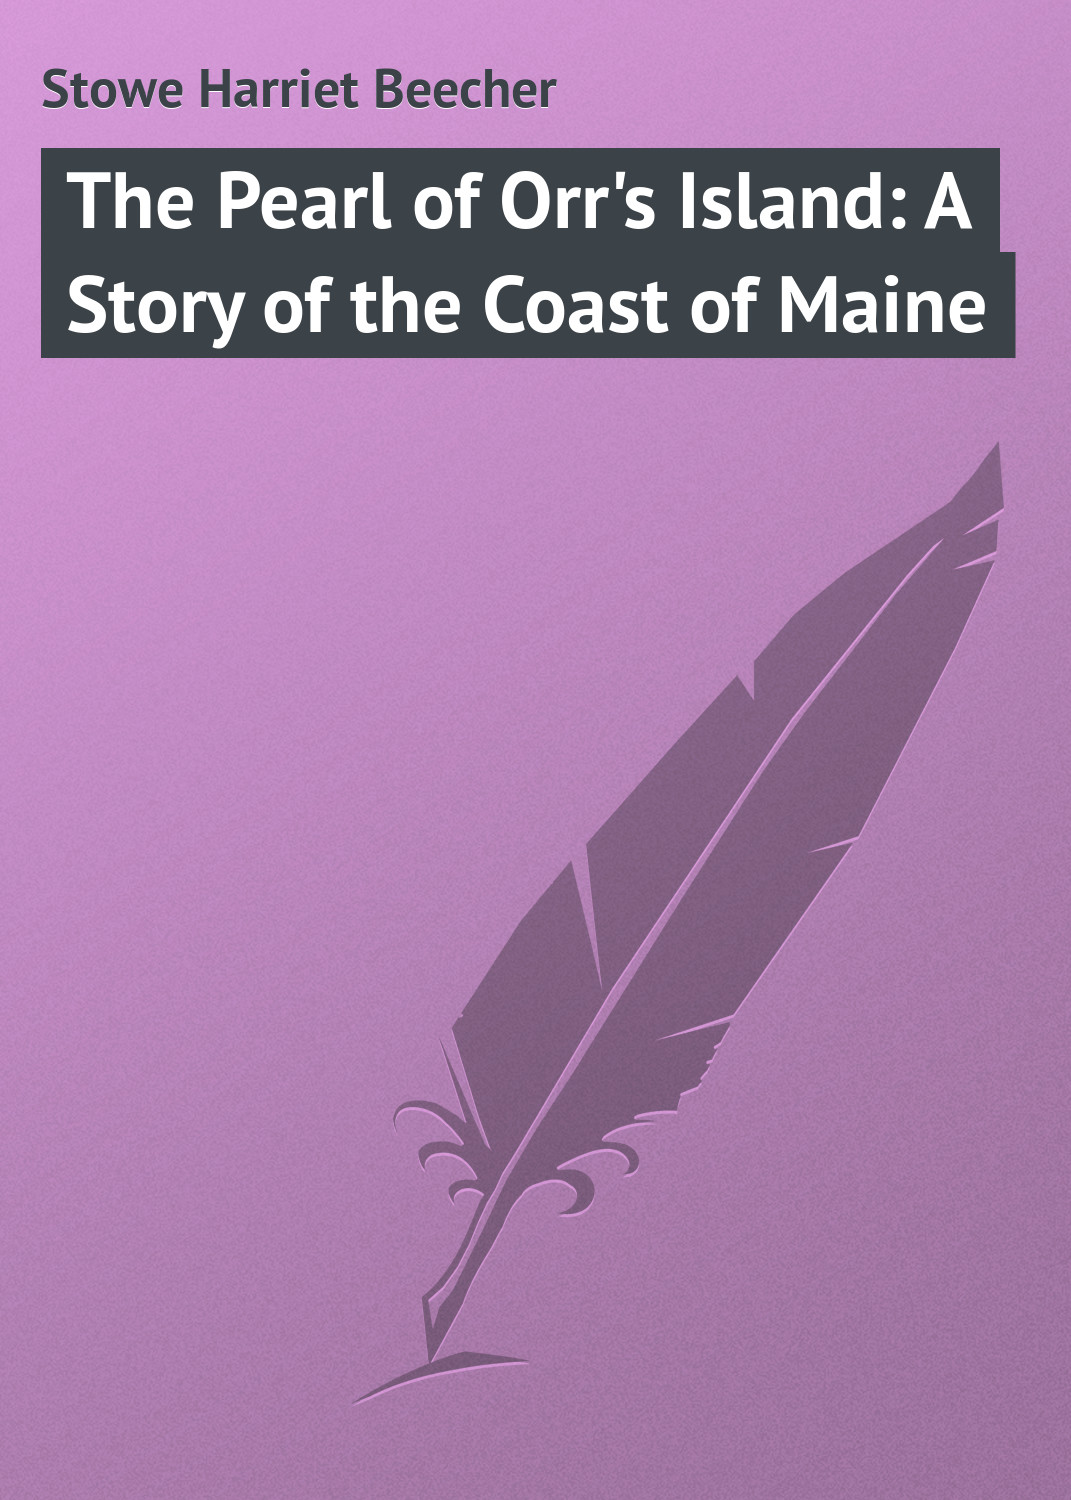 Гарриет Бичер-Стоу The Pearl of Orr's Island: A Story of the Coast of Maine джоэл коэн the boston camerata the schola cantorum of boston the shaker community of sabbathday lake maine joel cohen simple gifts